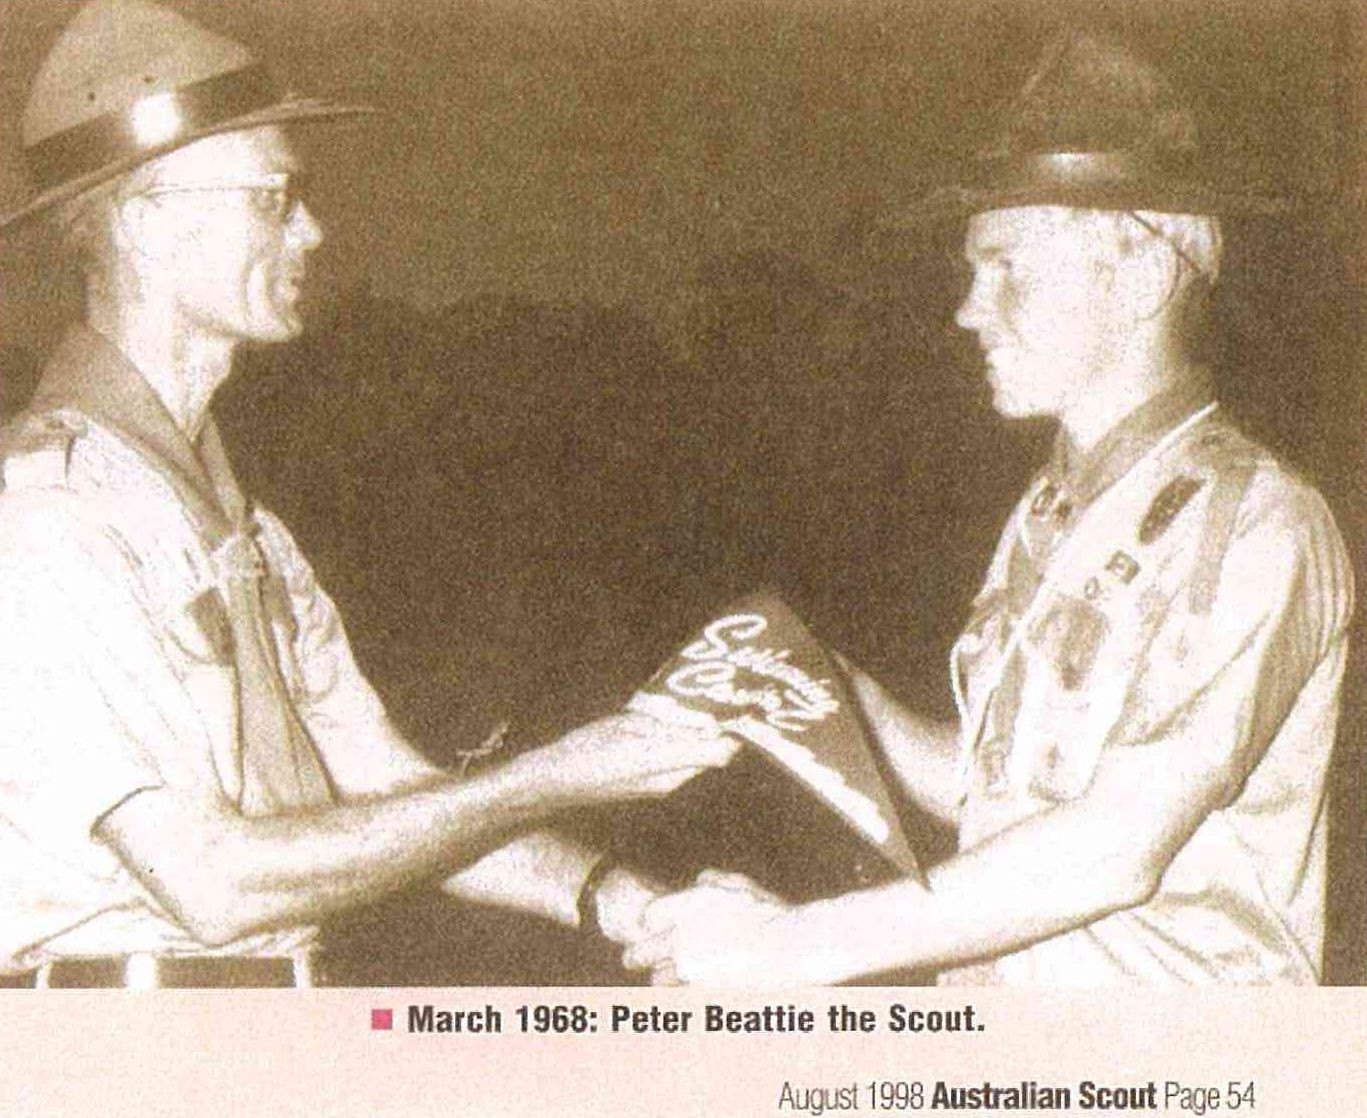 Peter Beattie with Scout Leader in 1968!